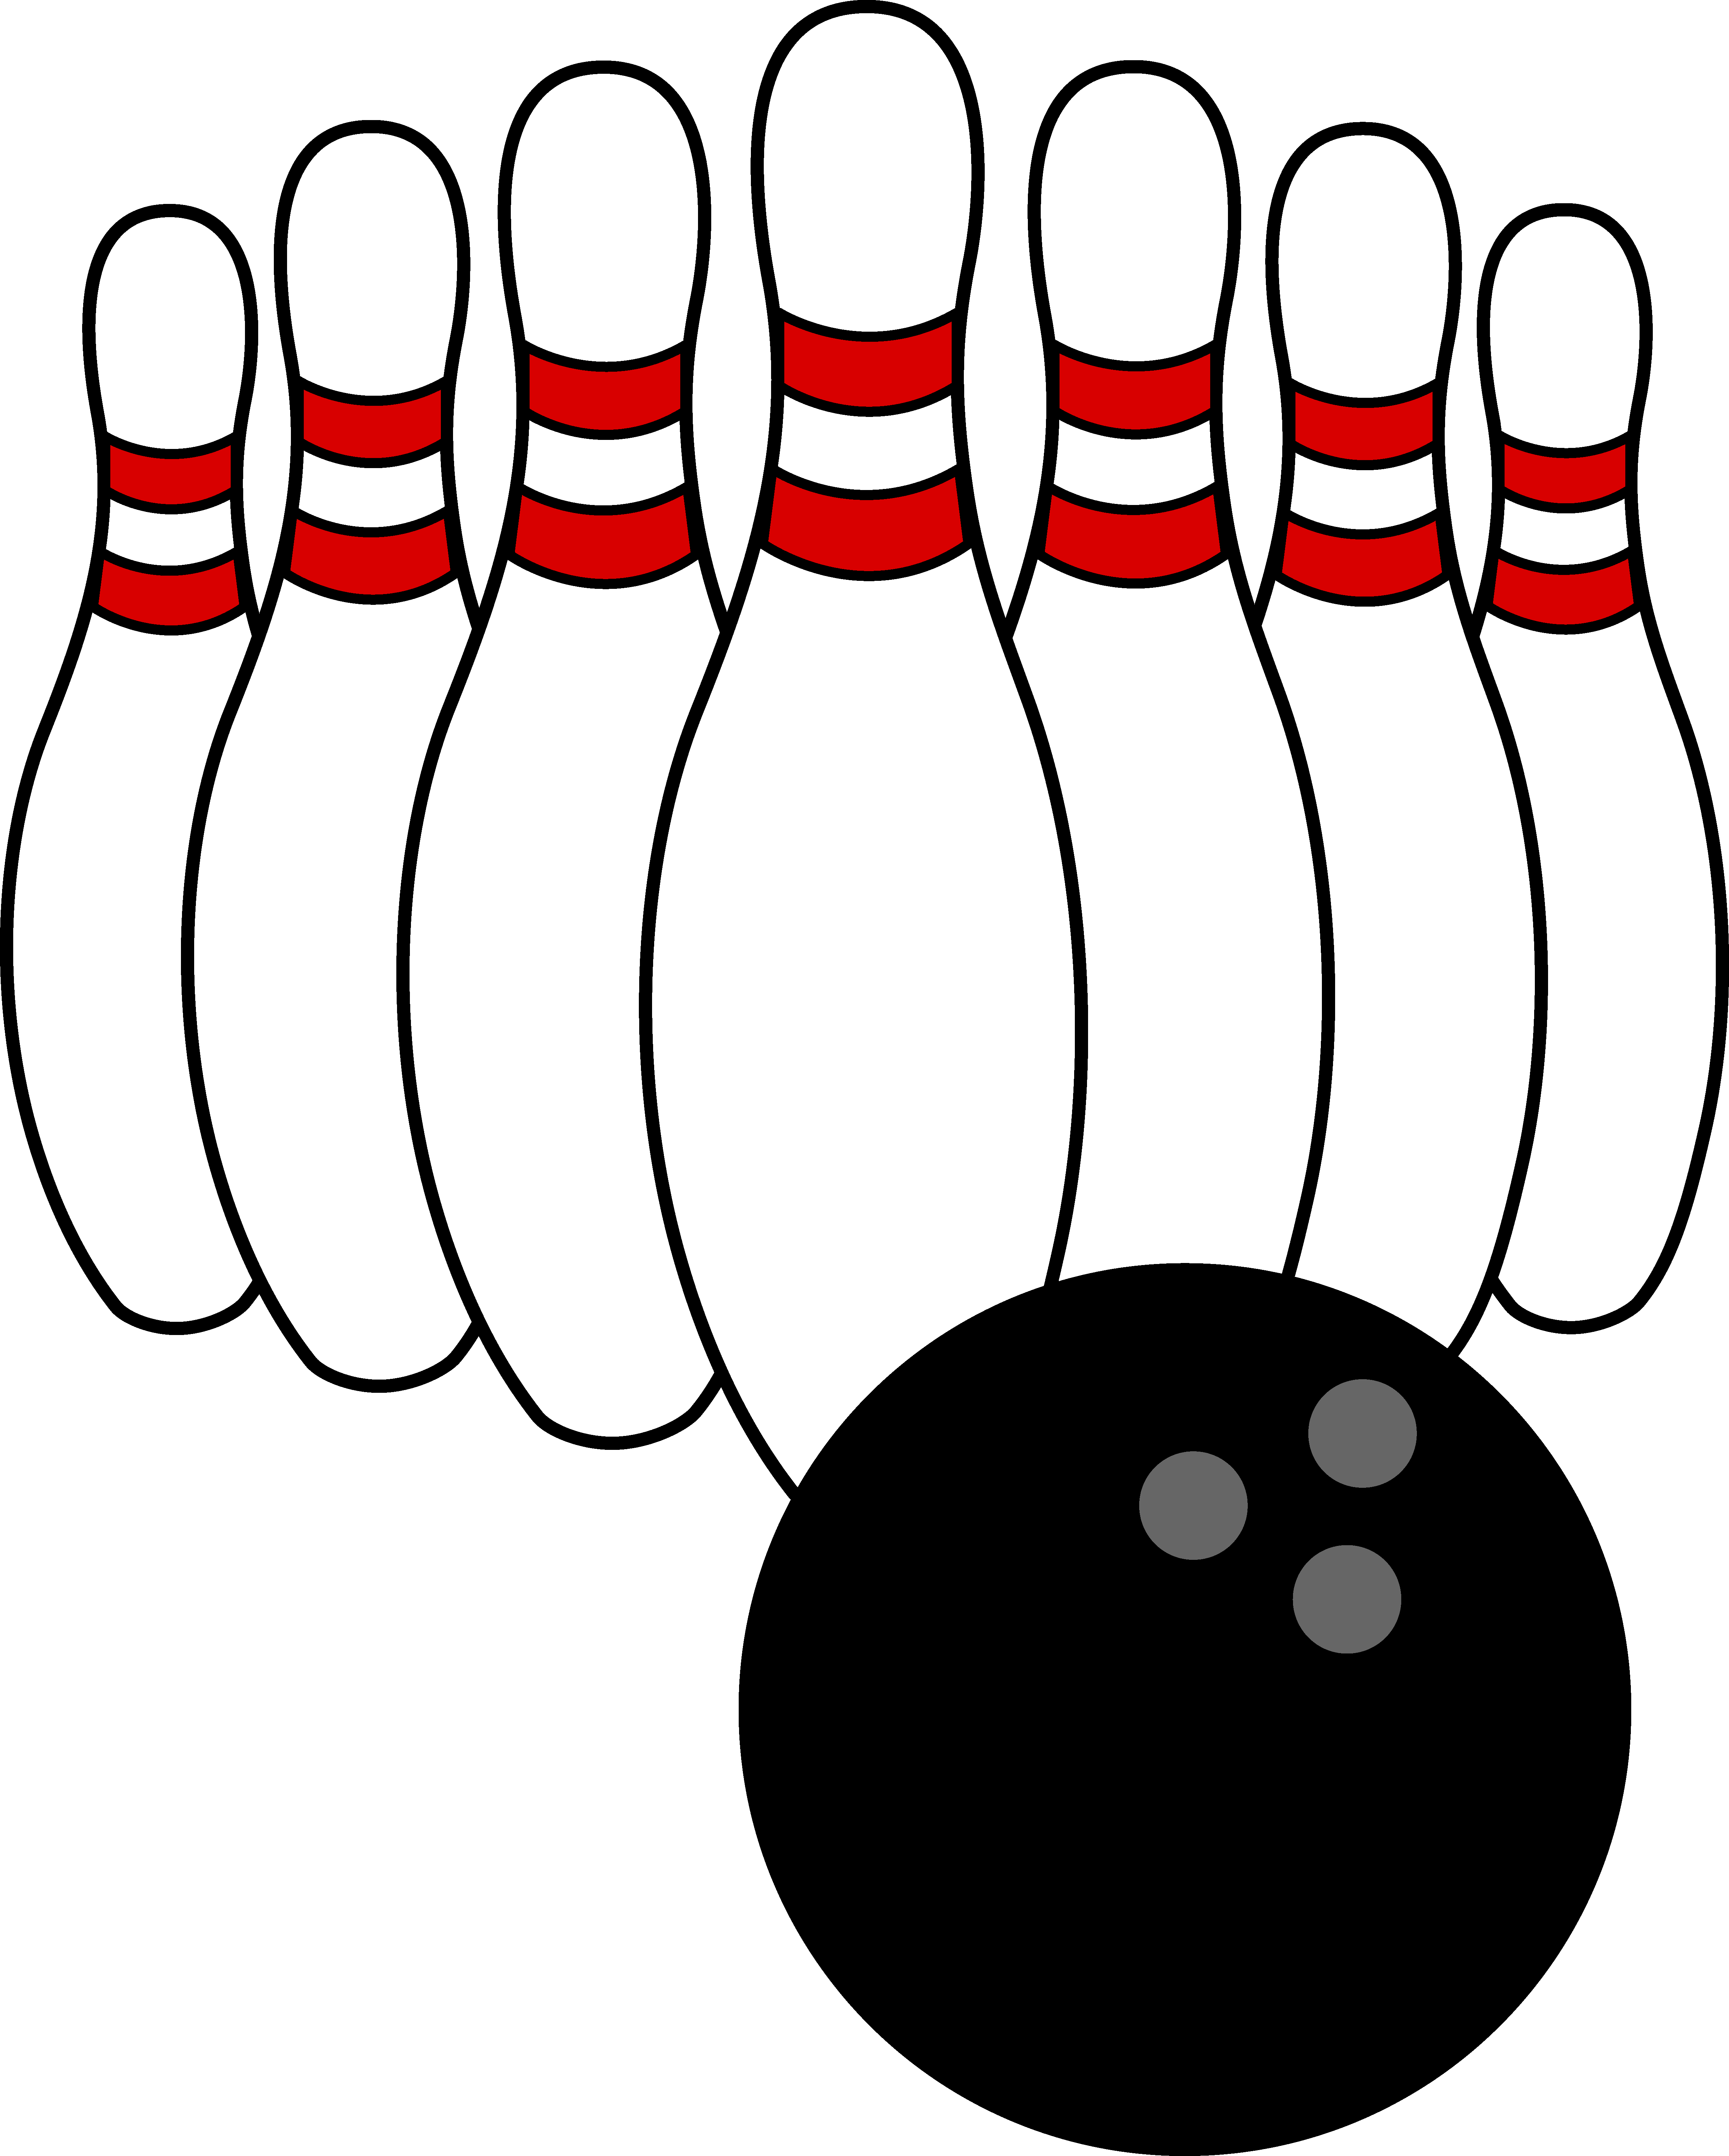 Bowl with money under it clipart clipart library library Bowling Clip Art | Bowling Ball and Pins | BOWLING | Pinterest ... clipart library library